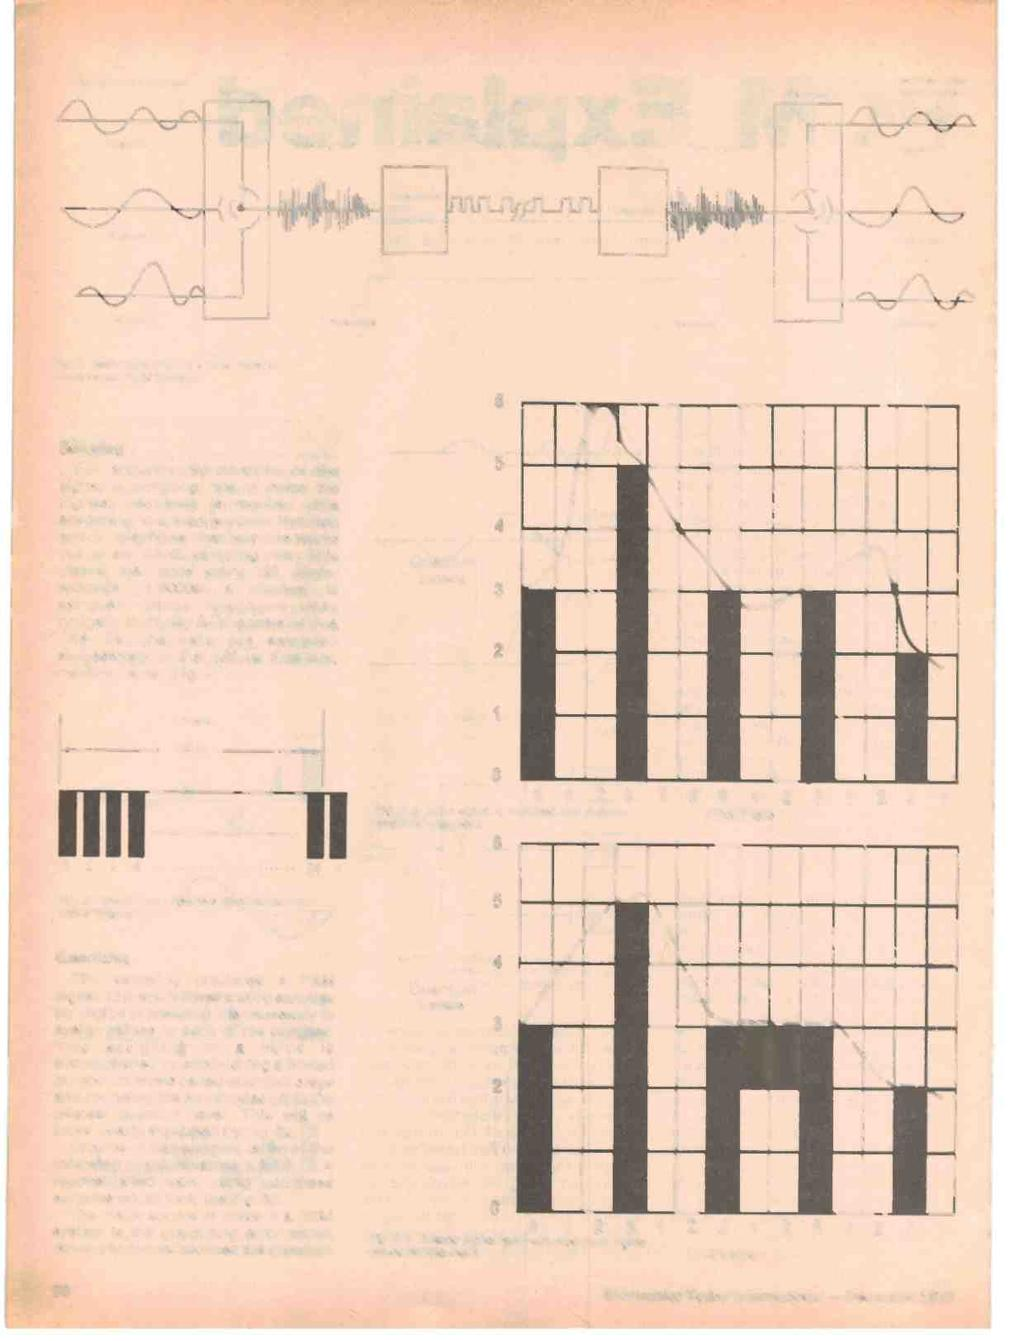 "Analog Speech Signals Channel 1 Sampler PAM Signals PCM Line Signals PAM Signals _- Sampler Channel Reconstructed Analog Speech g 1 Channel 2 Ouantizer and Encoder Channel 2 ""C::7 Channel 3"